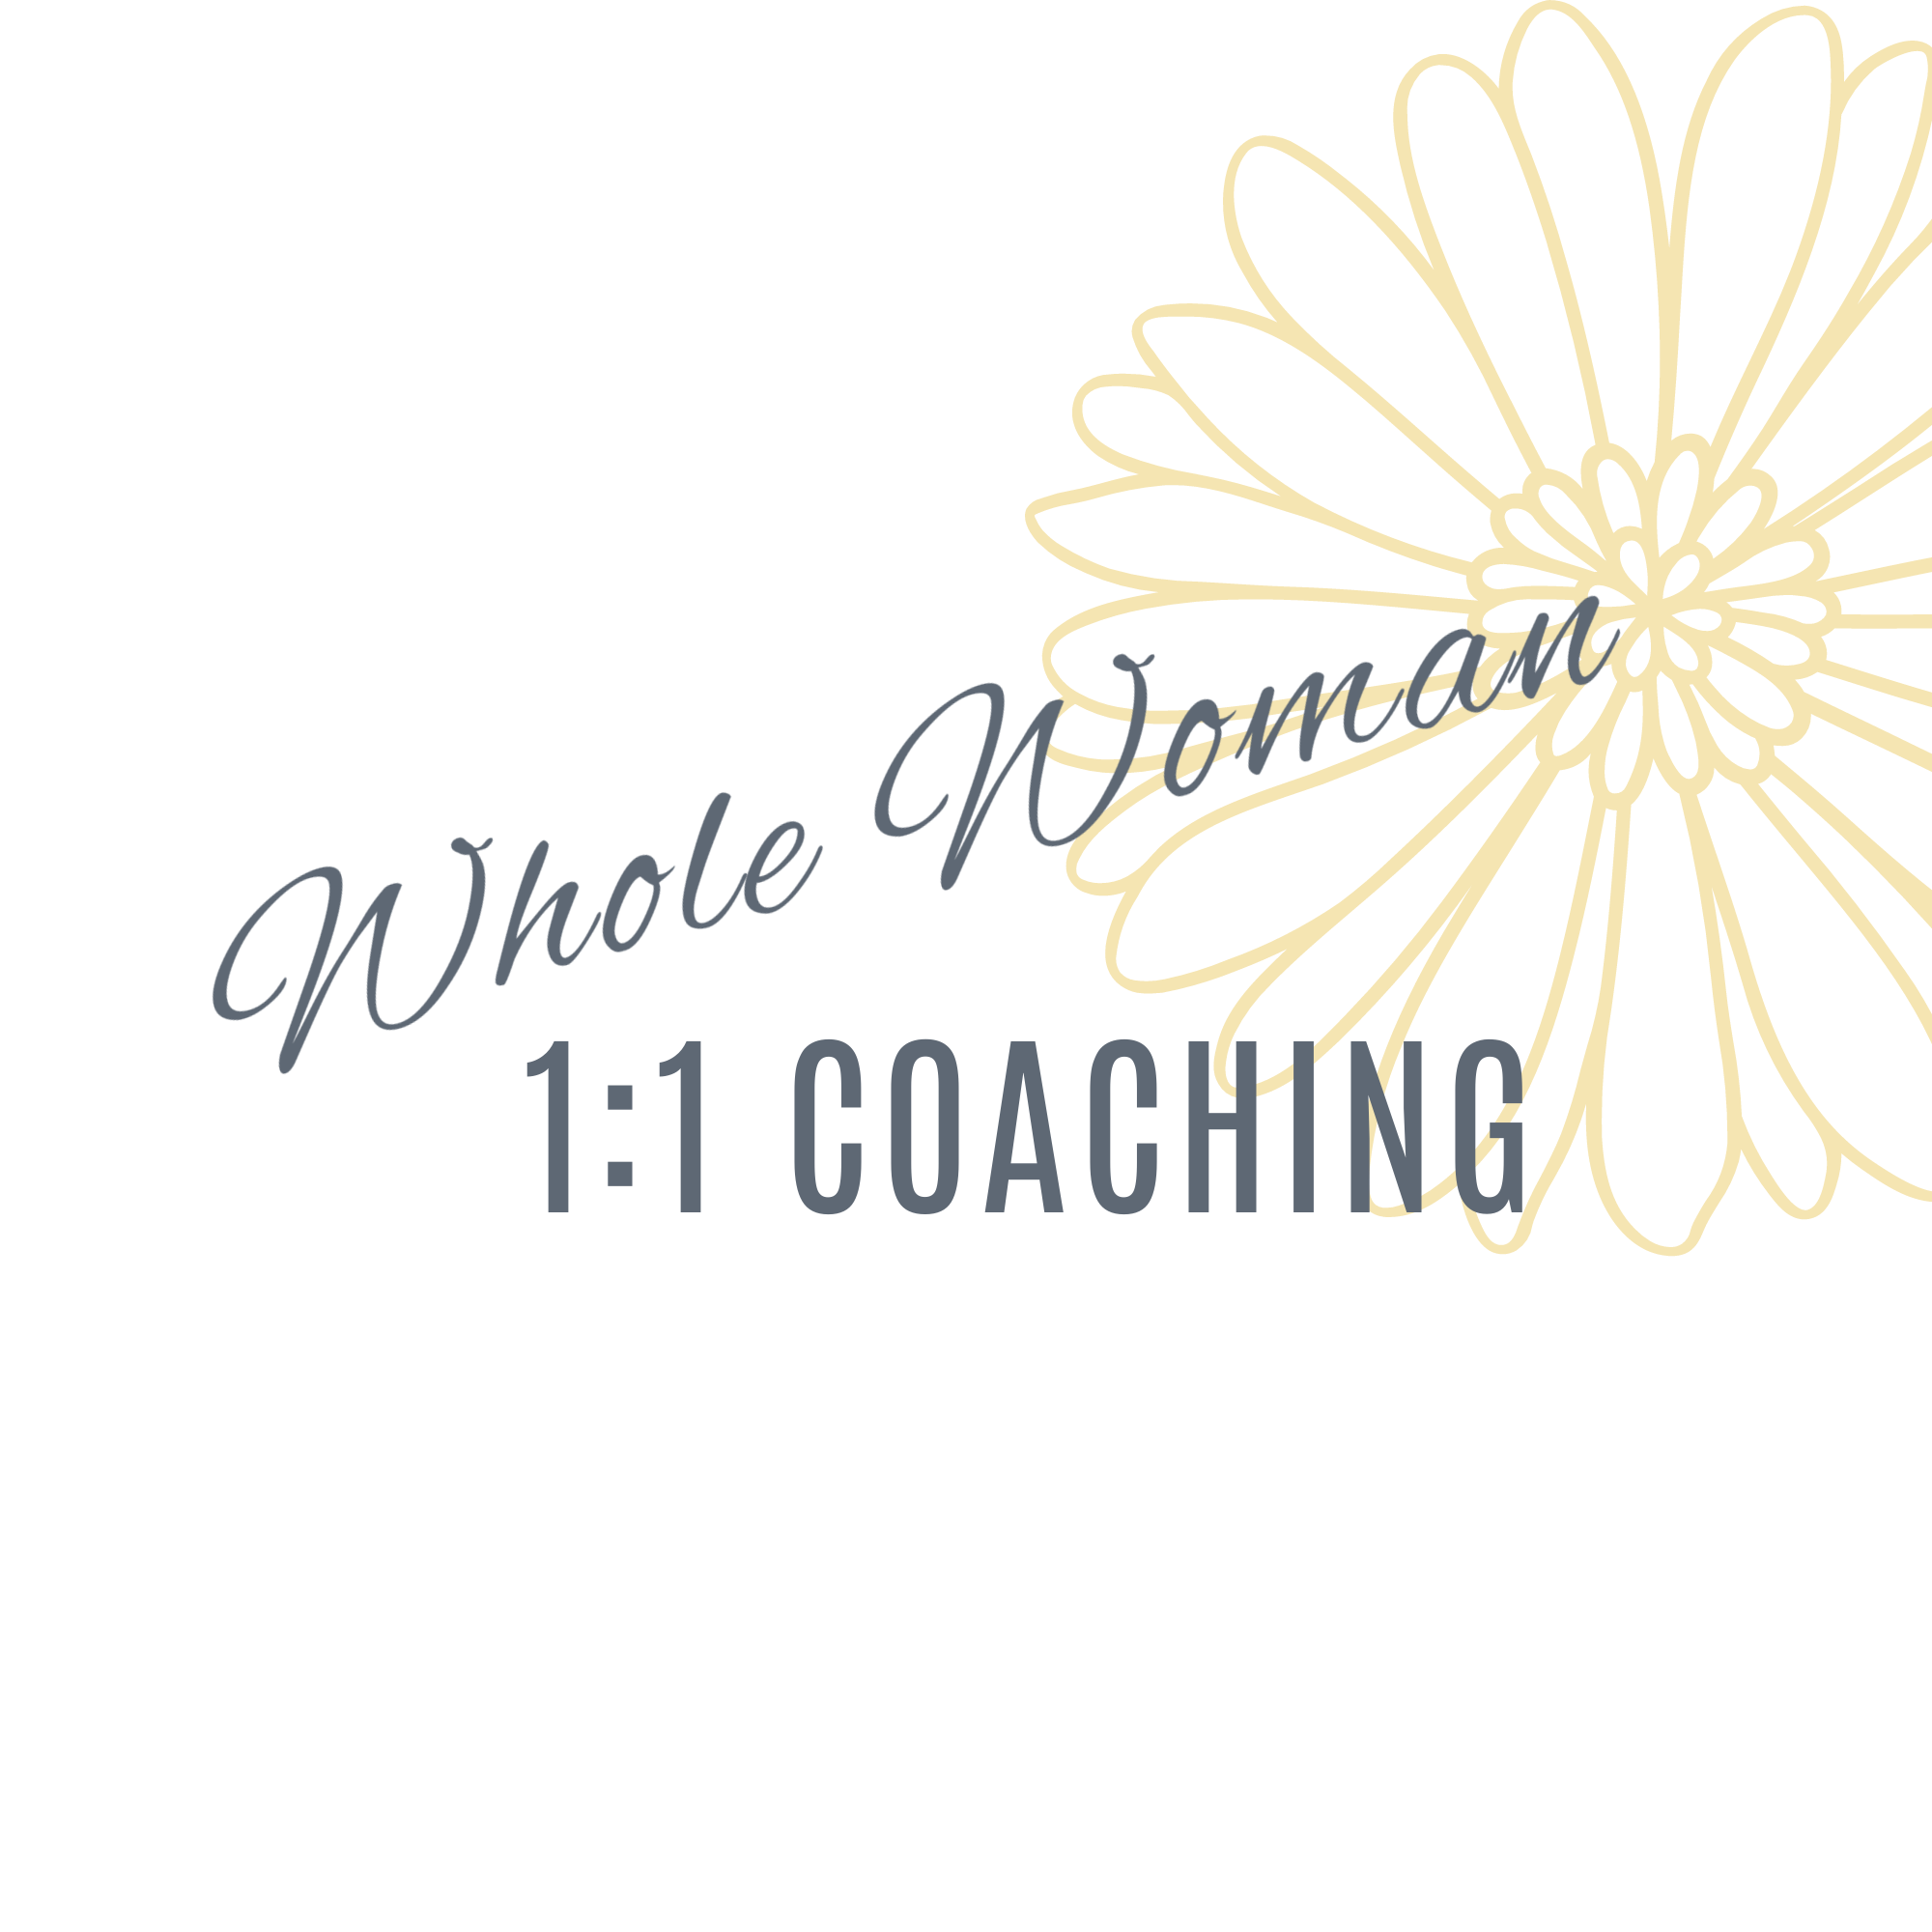 The Whole Woman 1:1 Business Coaching